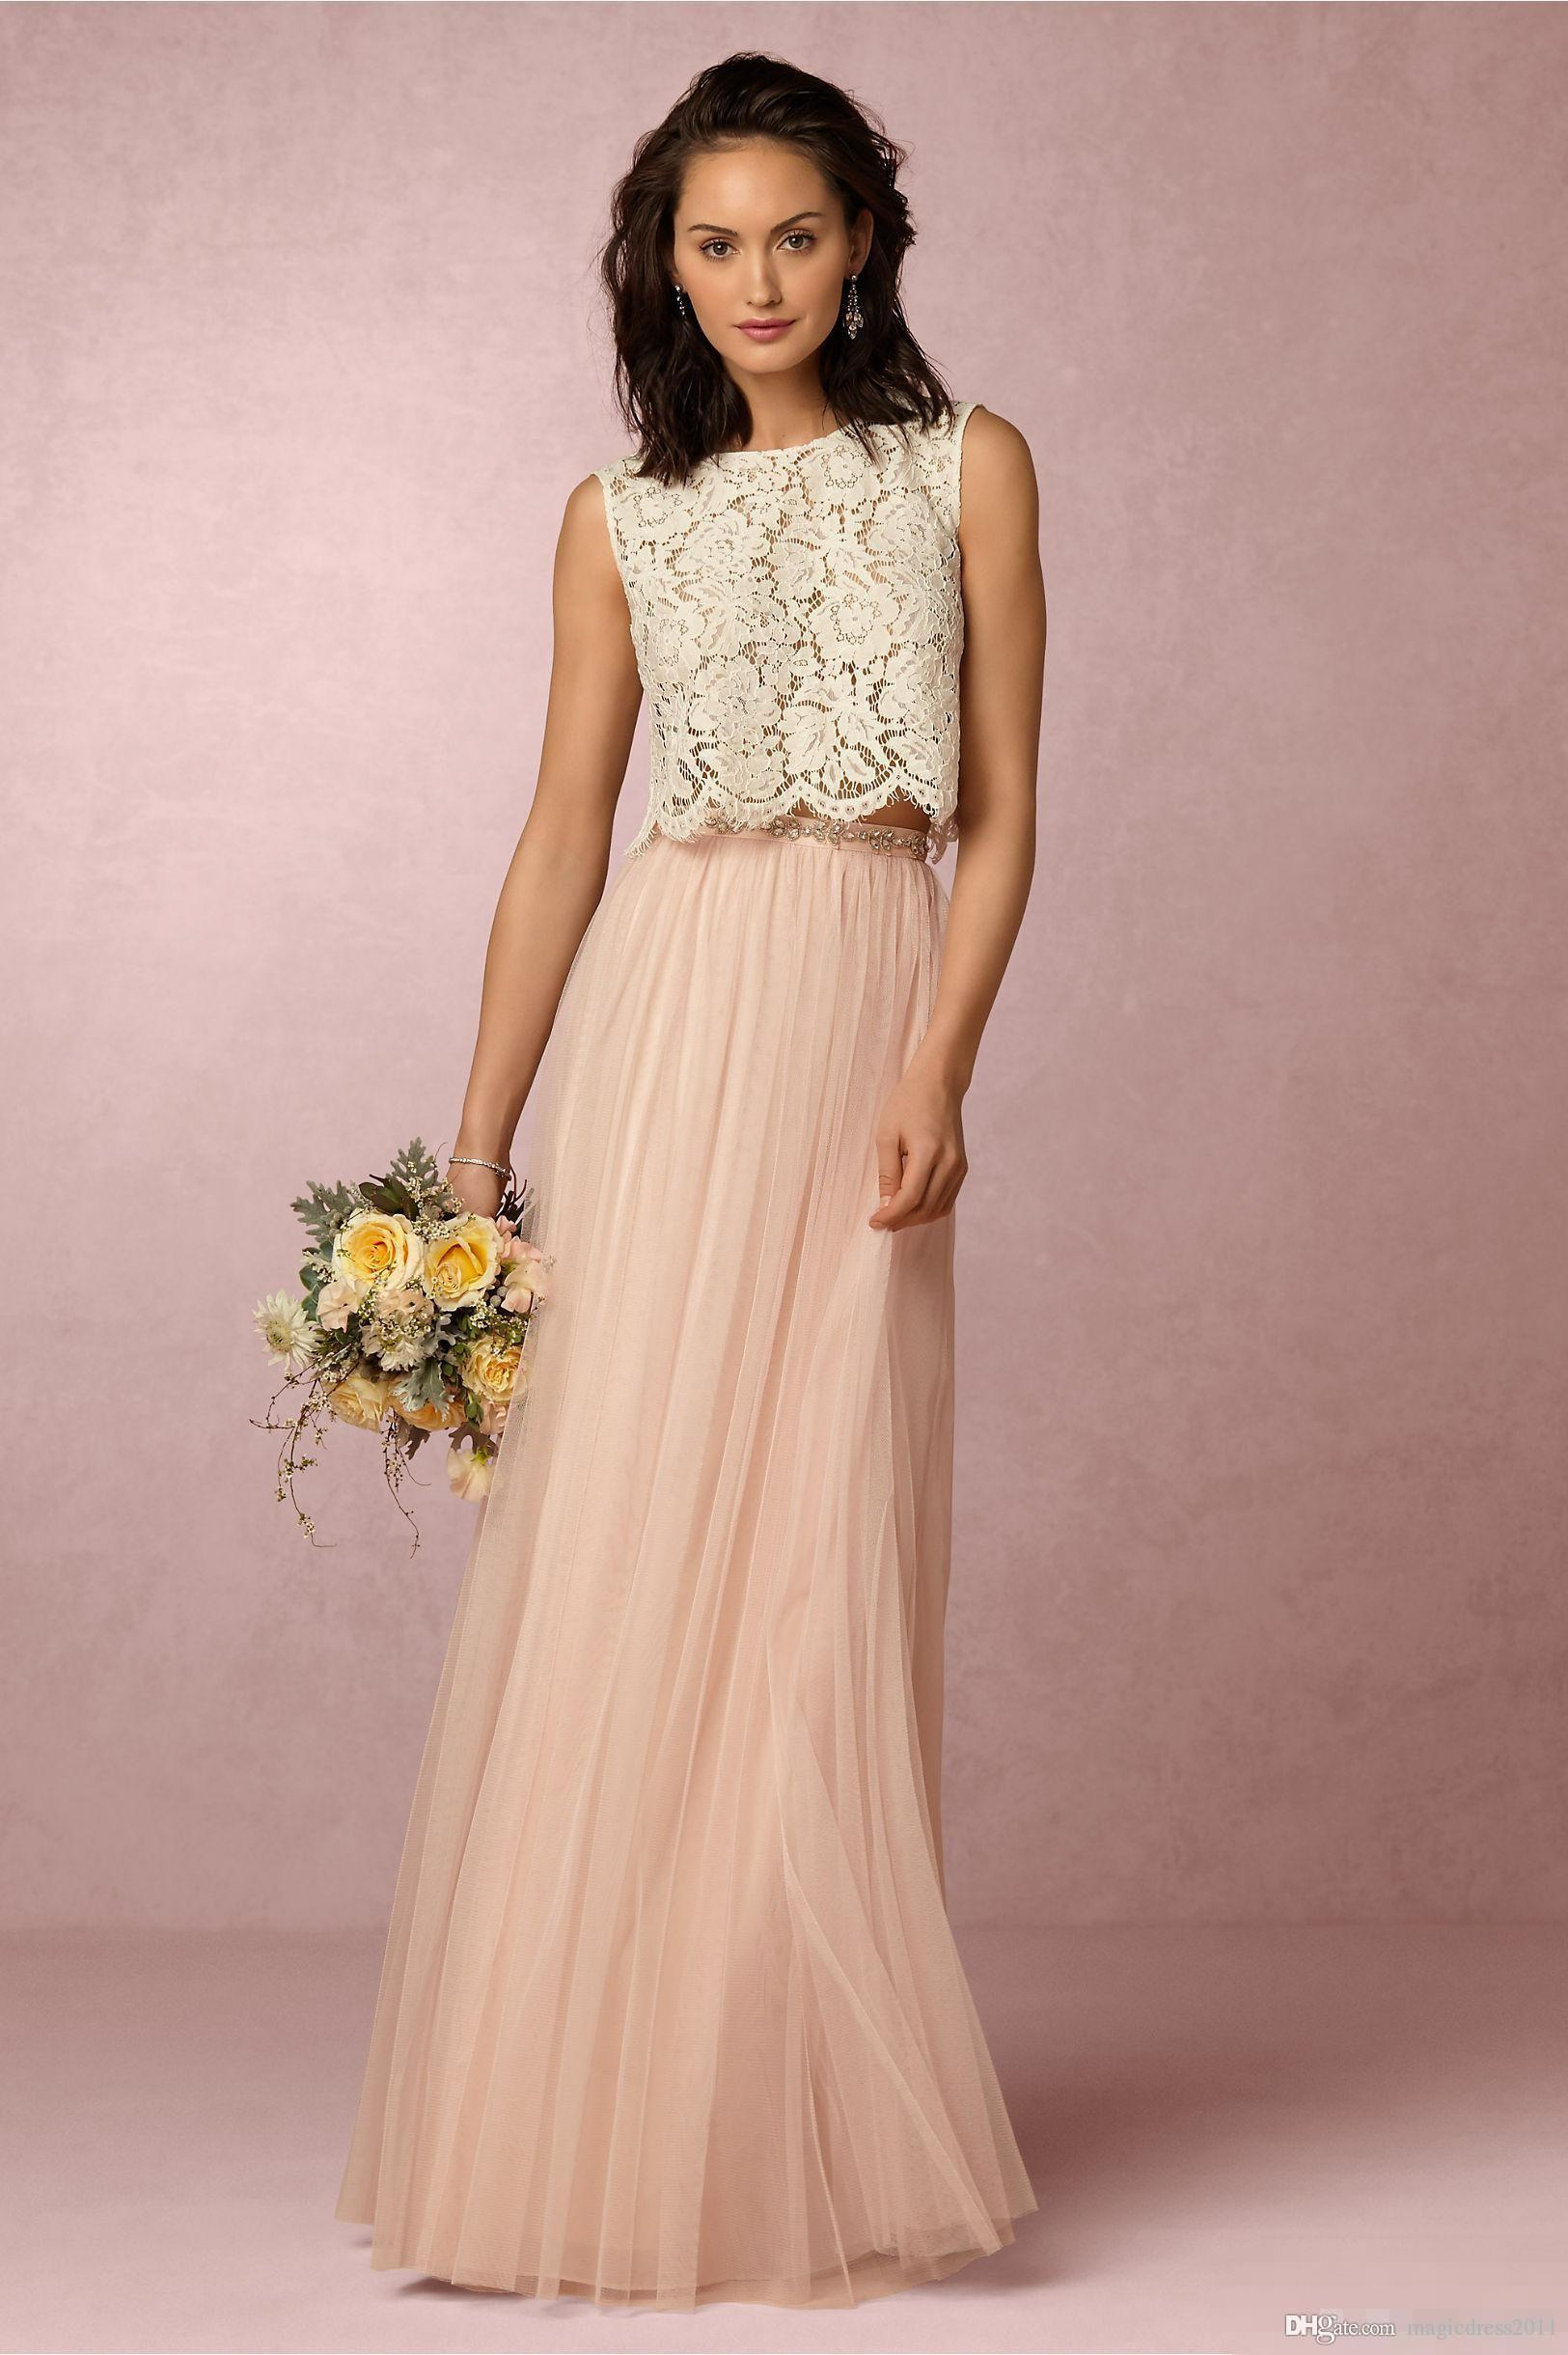 2018 Vintage Blush Pink Two Pieces Lace Bridesmaid Dresses Soft Tulle Floor Length Evening Gowns Formal Prom Party Cheap Custom: Soft Pink Vintage Wedding Dresses At Reisefeber.org